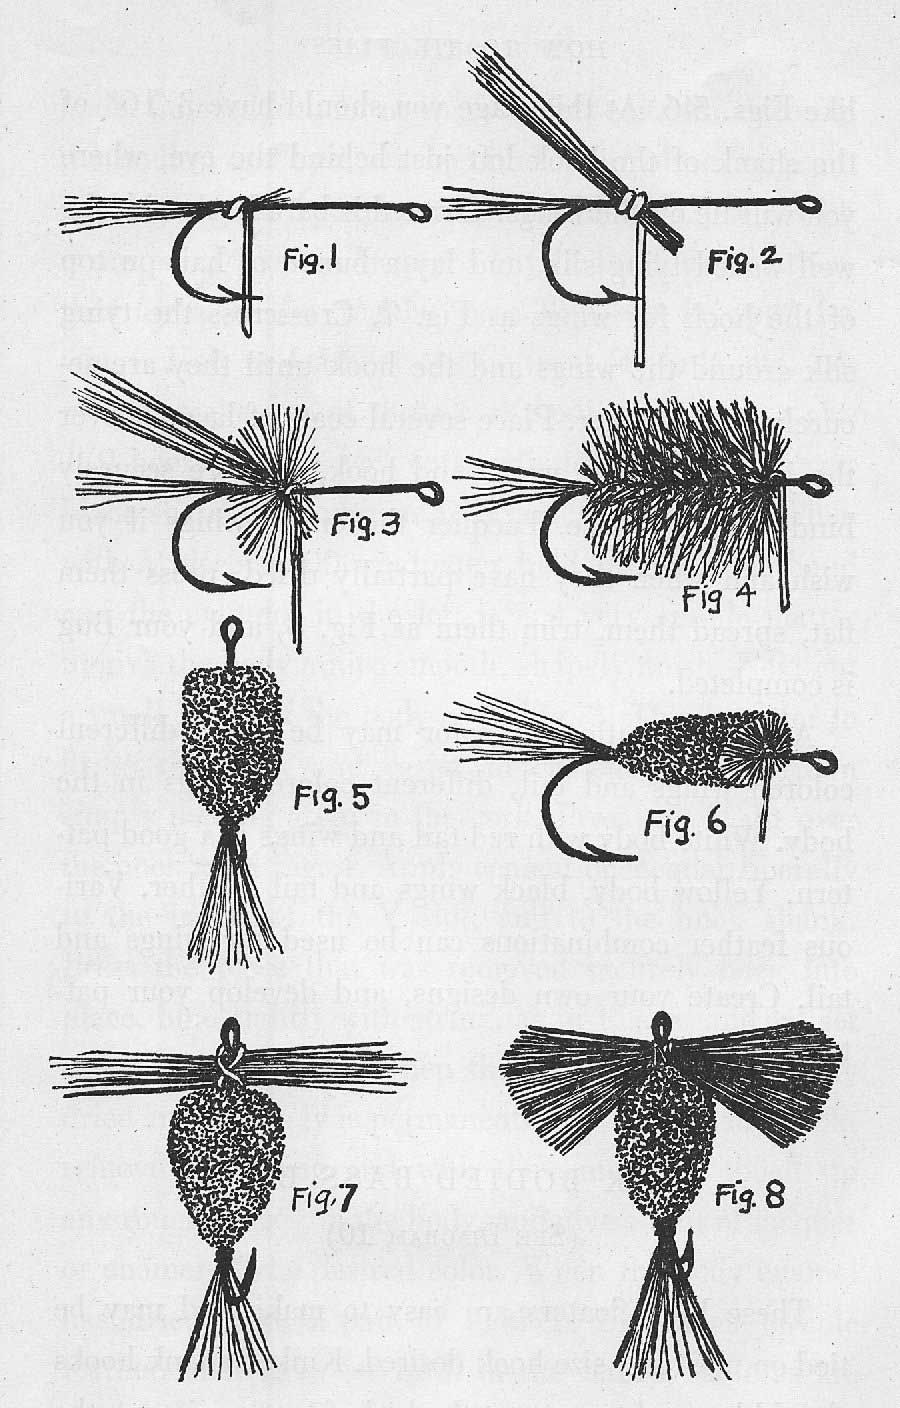 medium resolution of page sized diagram showing drawings of bass bug construction